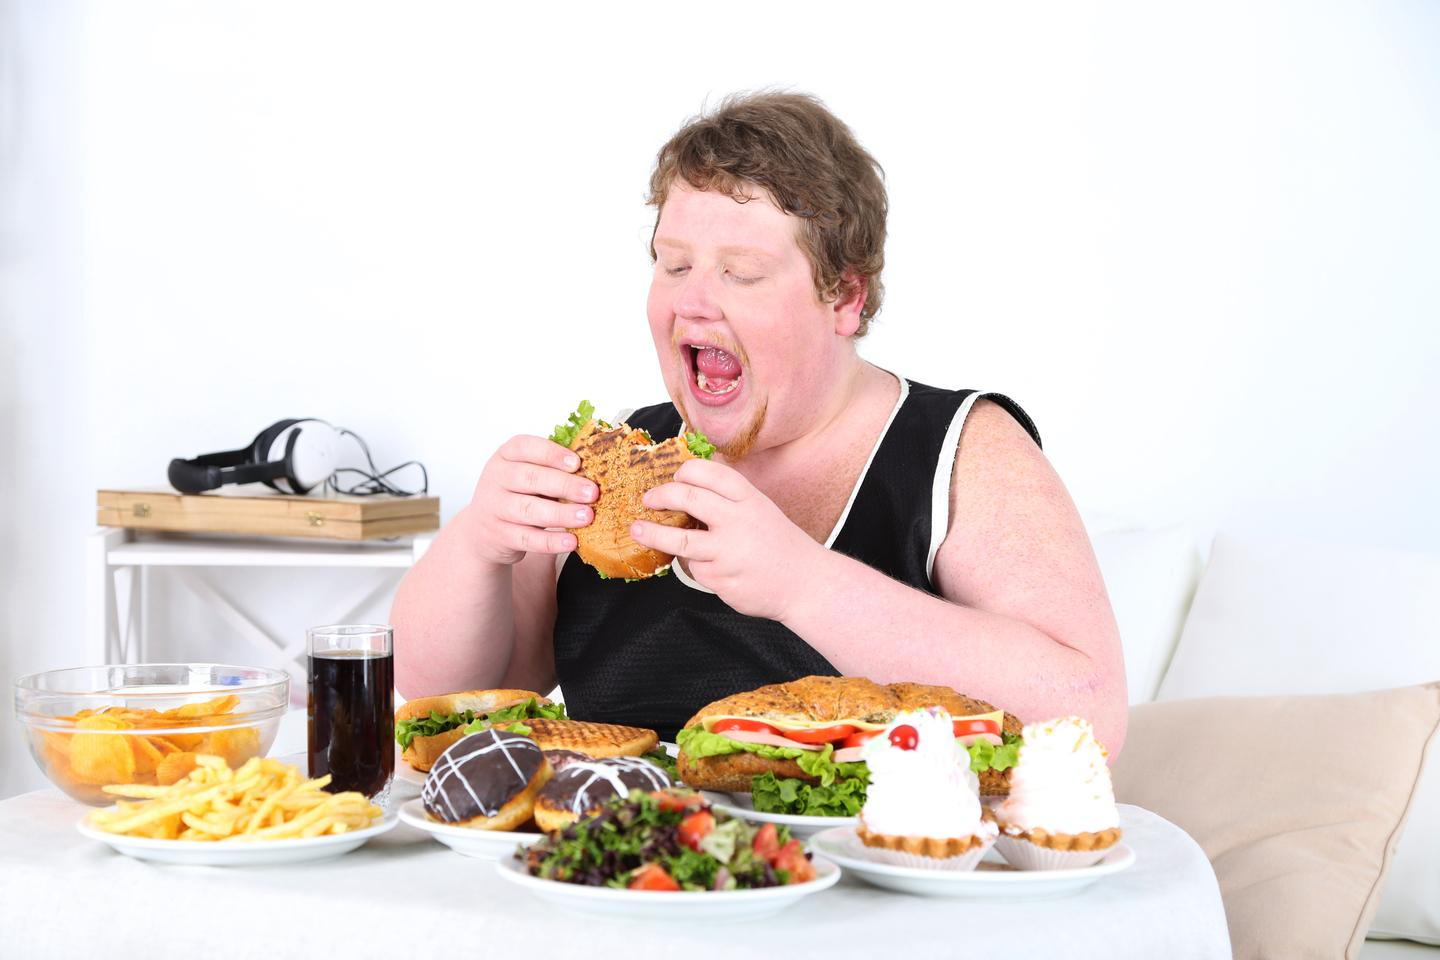 New research suggests a neural pathway linked to overeating regulates our ability to control impulsive behavior